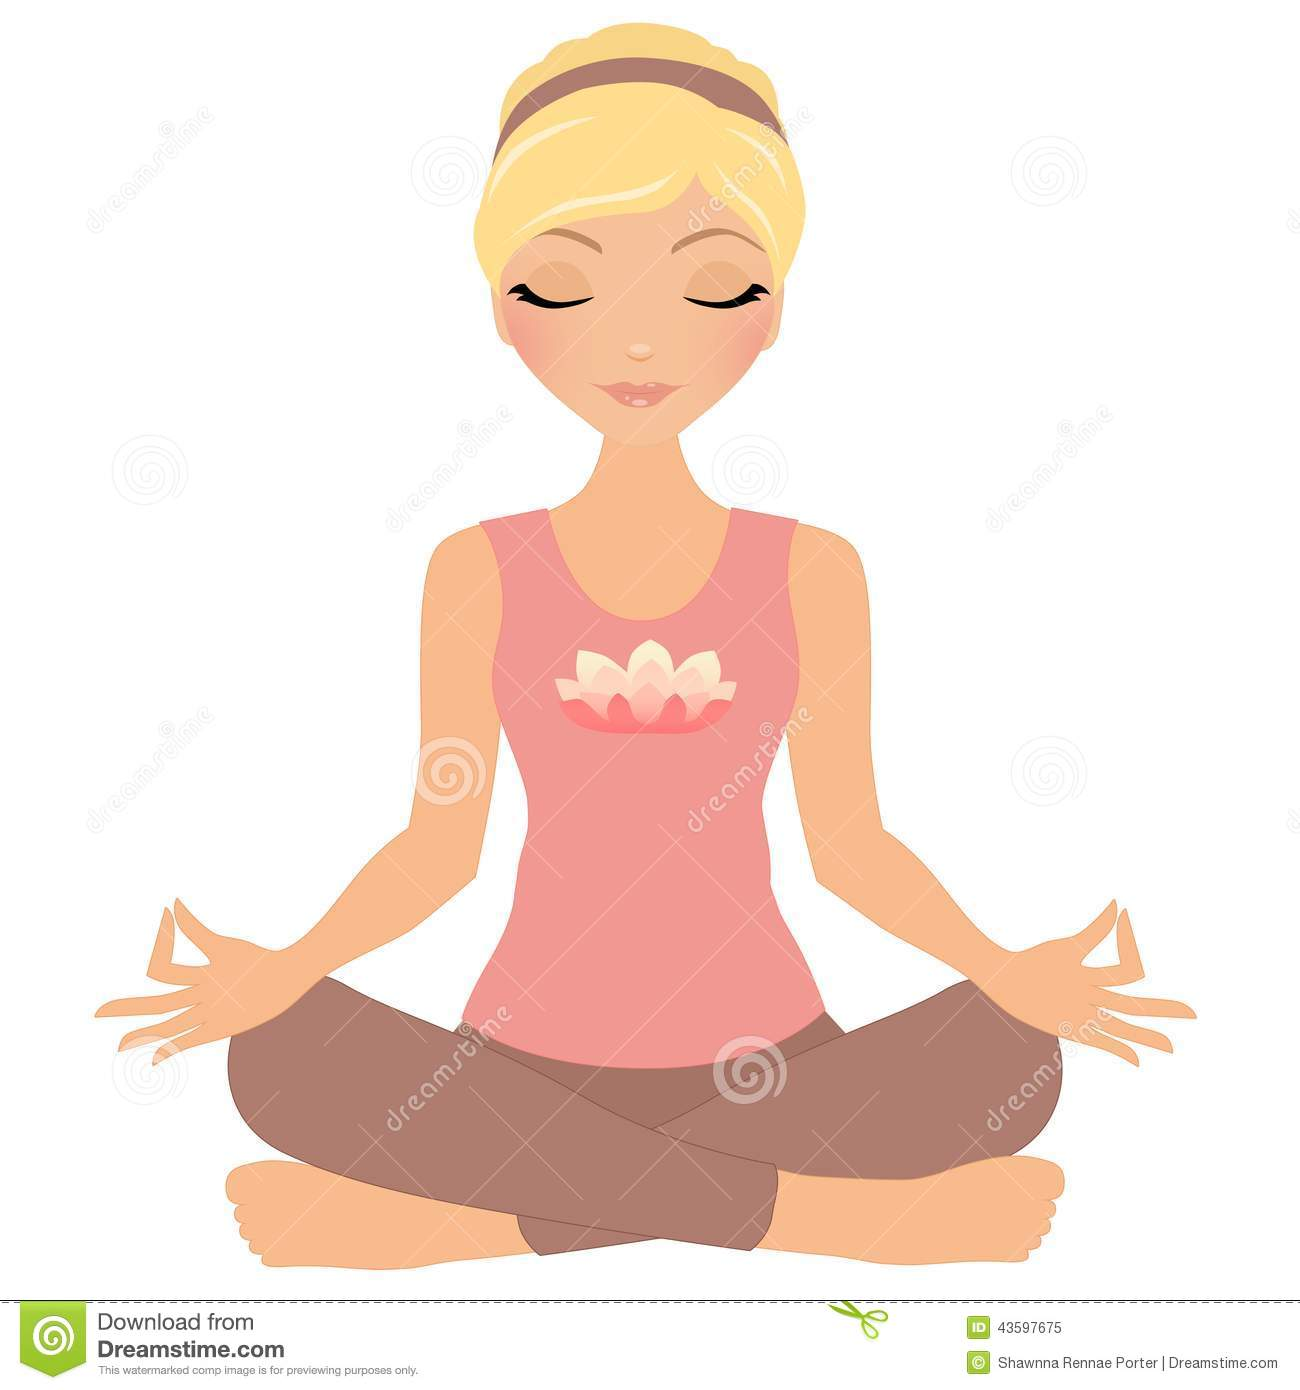 Woman meditating clipart.